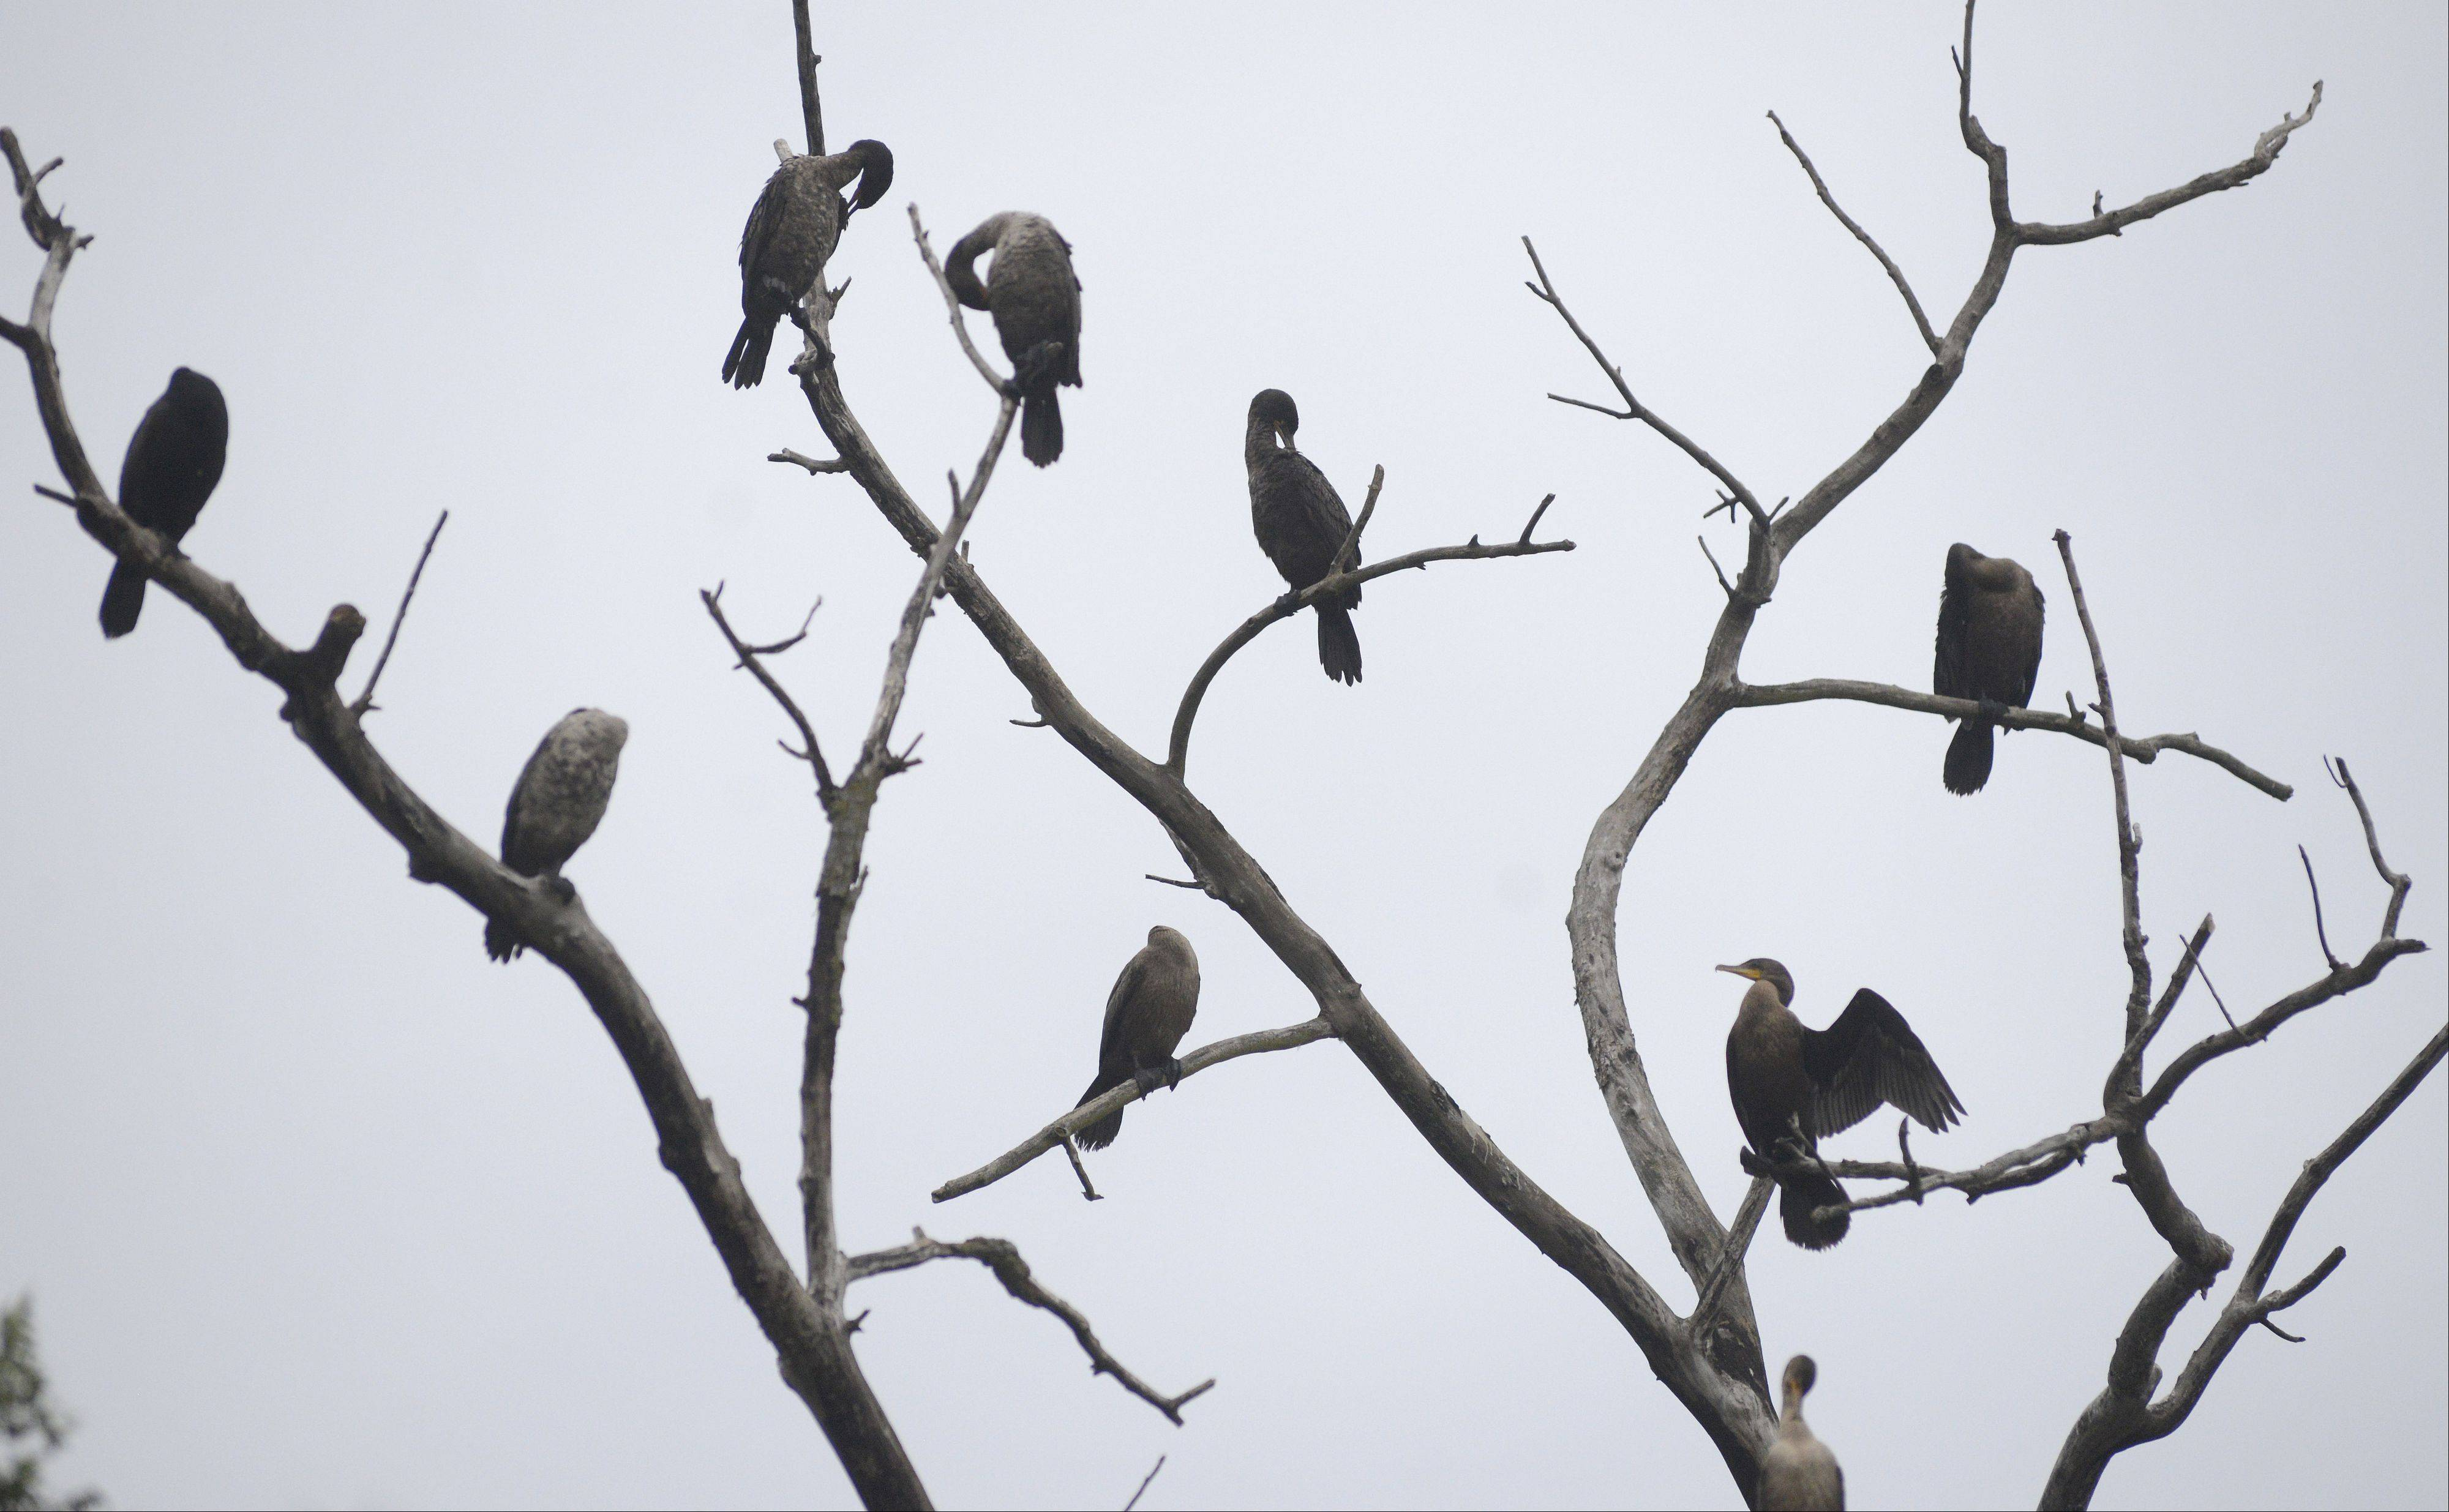 Cormorants groom themselves while others doze, looking as if they are missing their heads, perched on a dead tree along the Fox River in Batavia Tuesday. The birds caught the attention of many walkers-by and bicyclists as they crossed the pedestrian bridge.